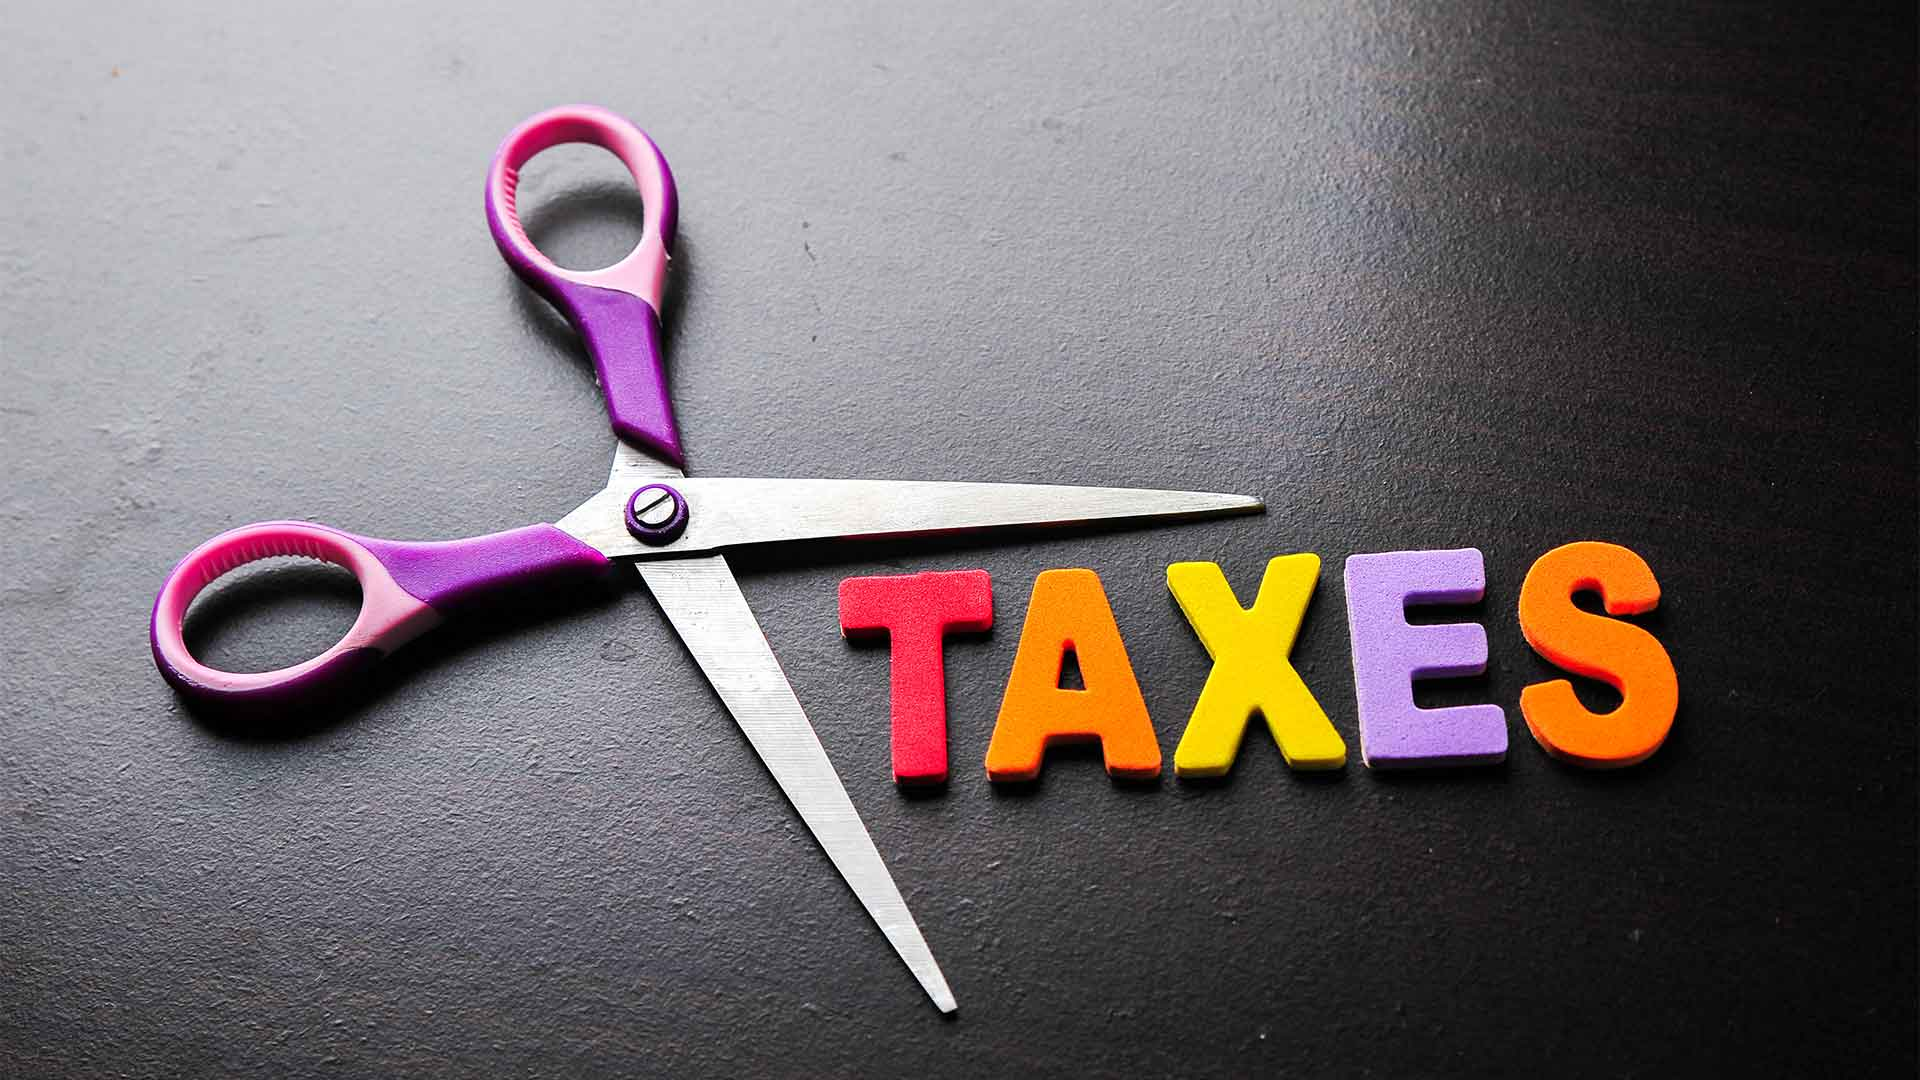 Income Tax Rates for Financial Year 2018-19 (Assessment Year 2019-20)